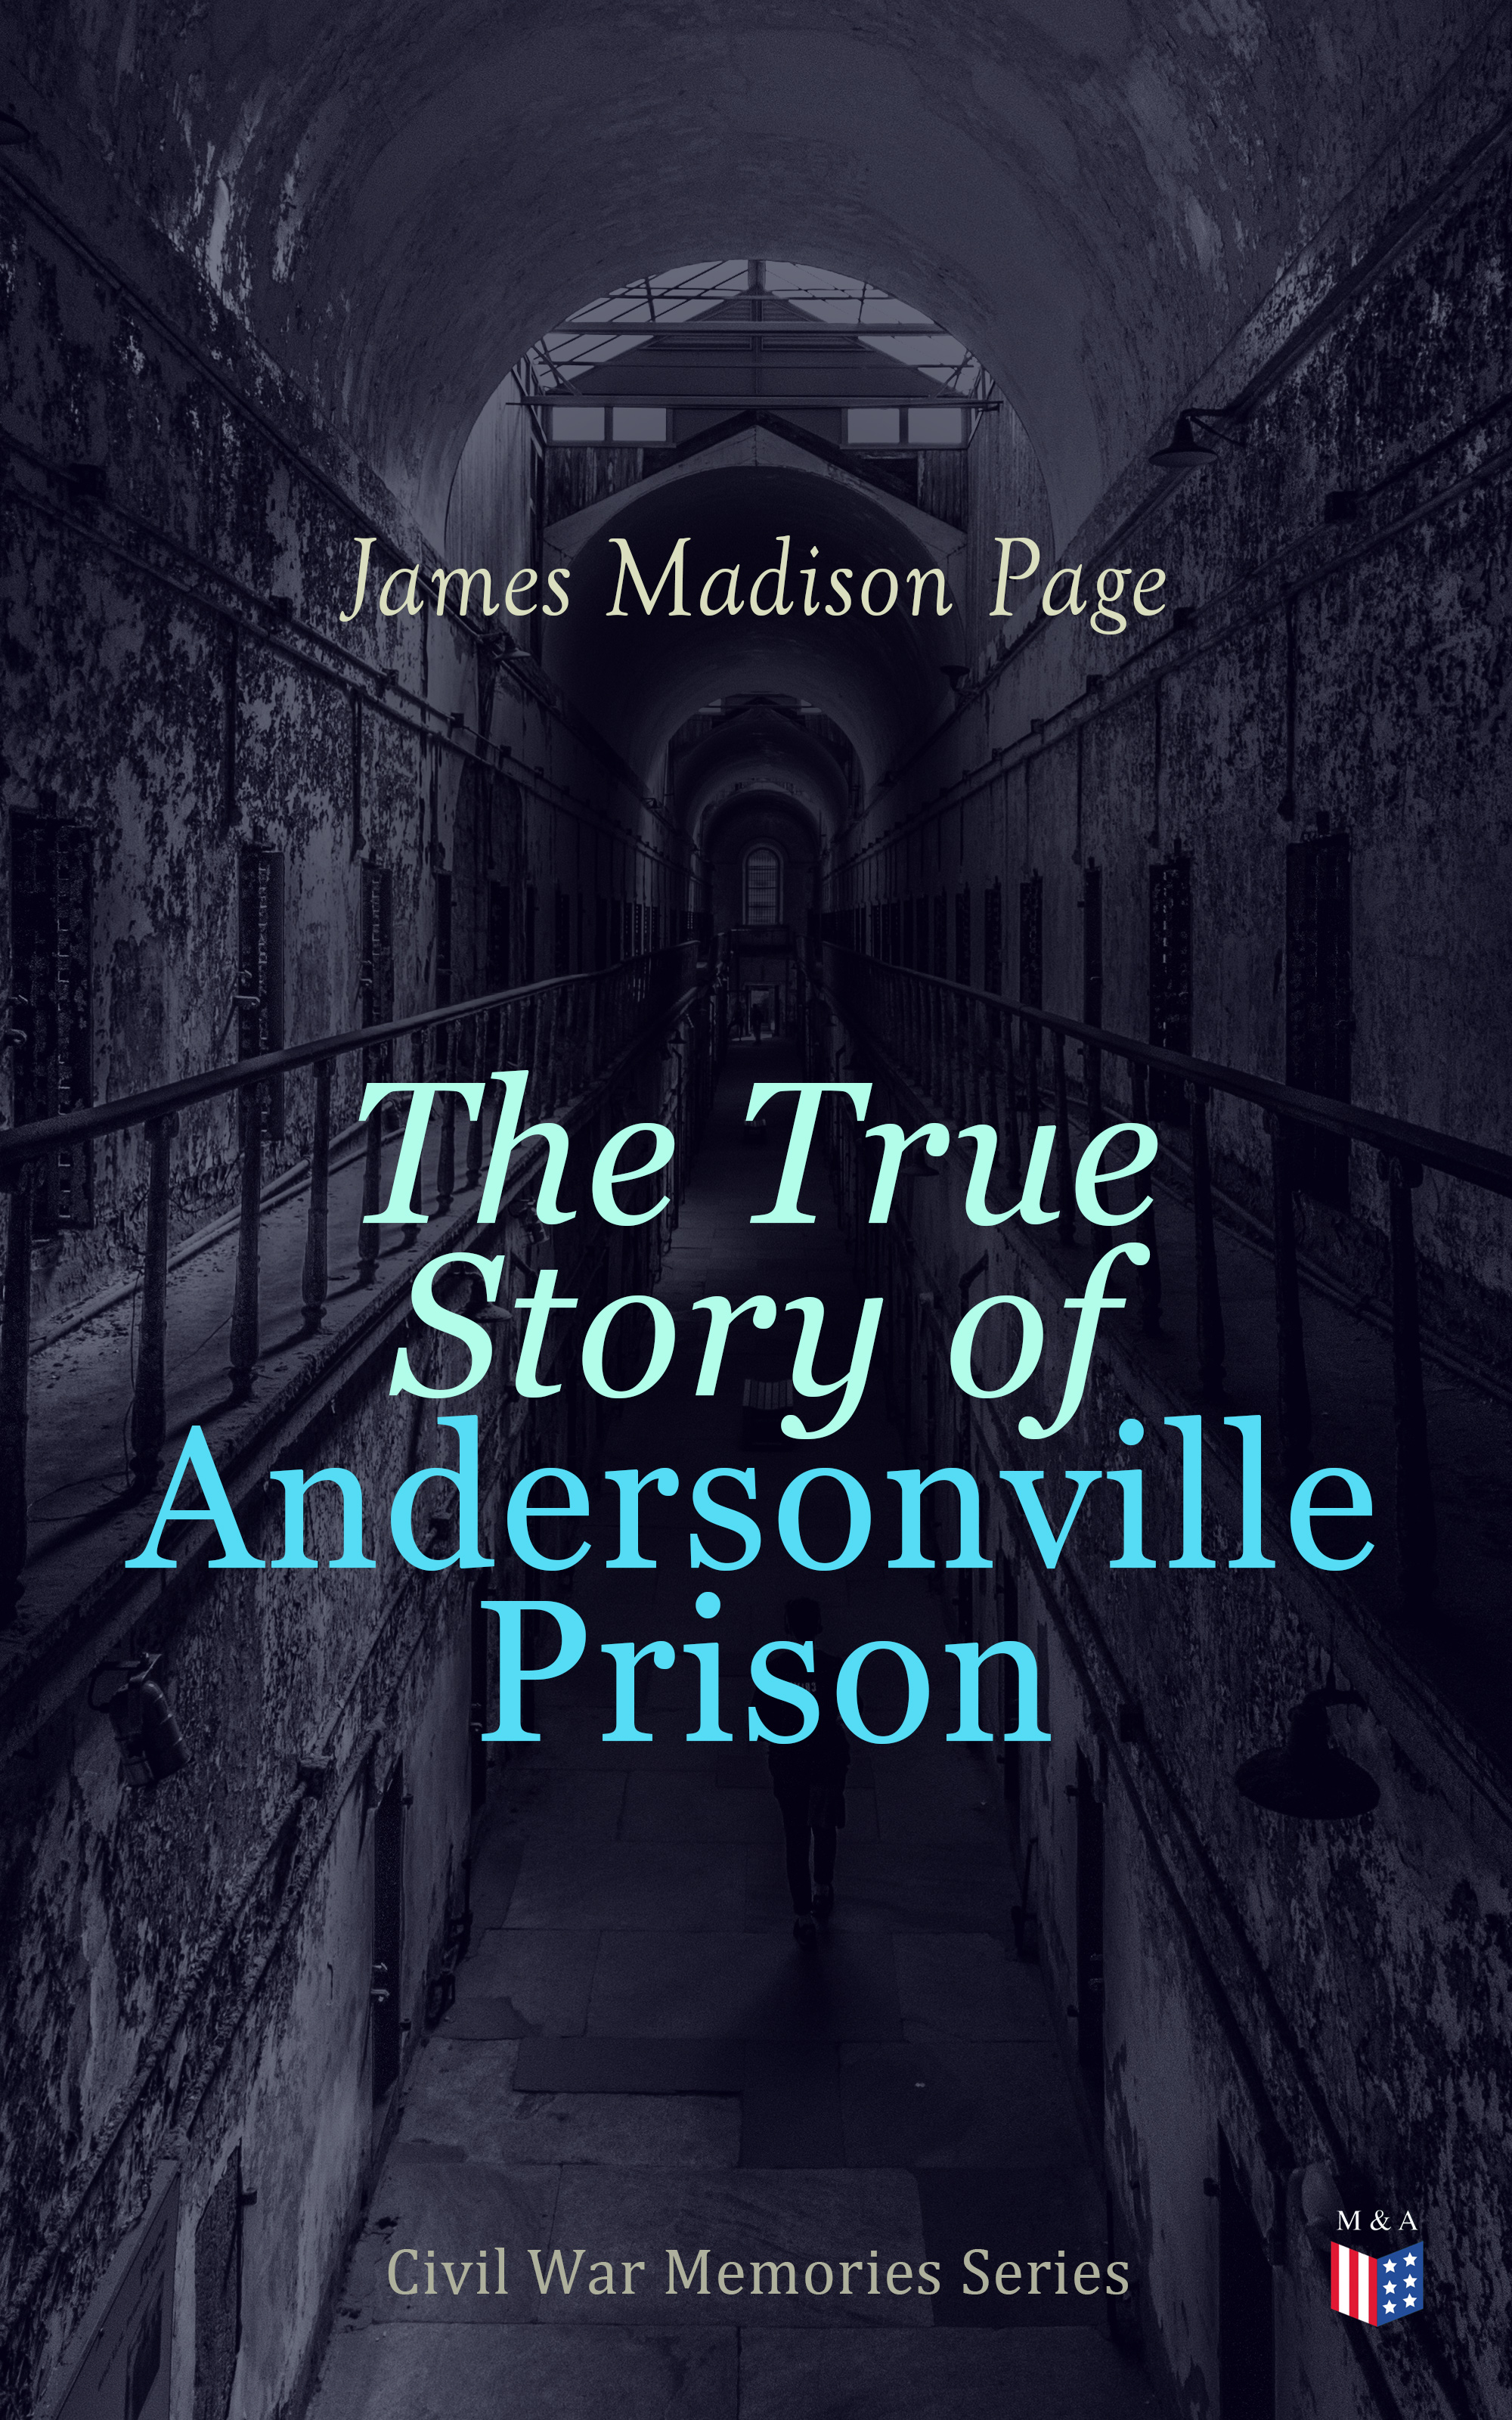 James Madison Page The True Story of Andersonville Prison kathleen norris the story of julia page